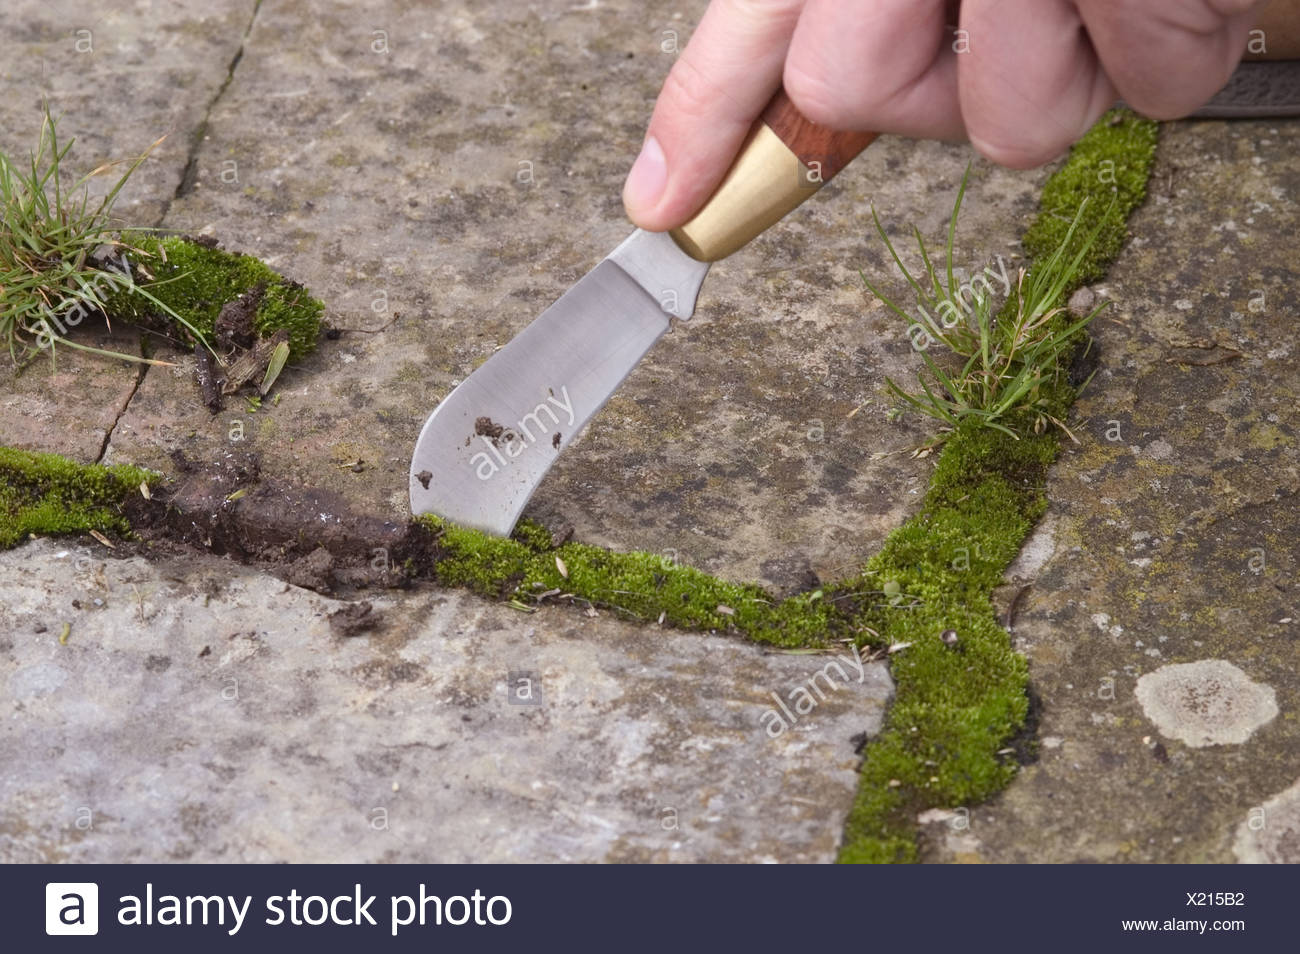 Gardener taking out weeds from between paving slabs using a garden knife Stock Photo